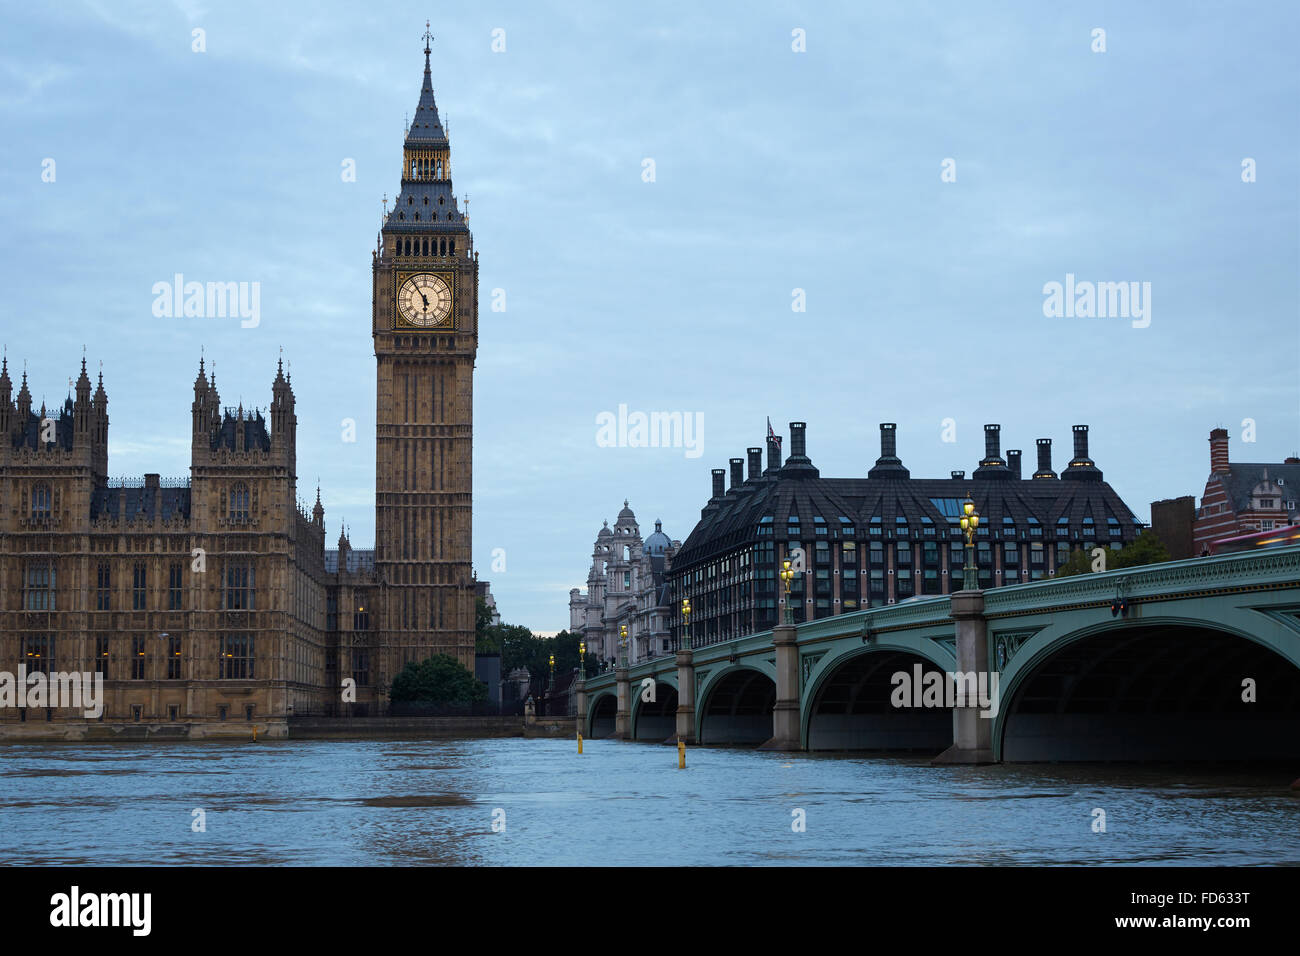 Big Ben and bridge, traffic on bridge at dusk in London, natural light and colors in the early cloudy morning in - Stock Image